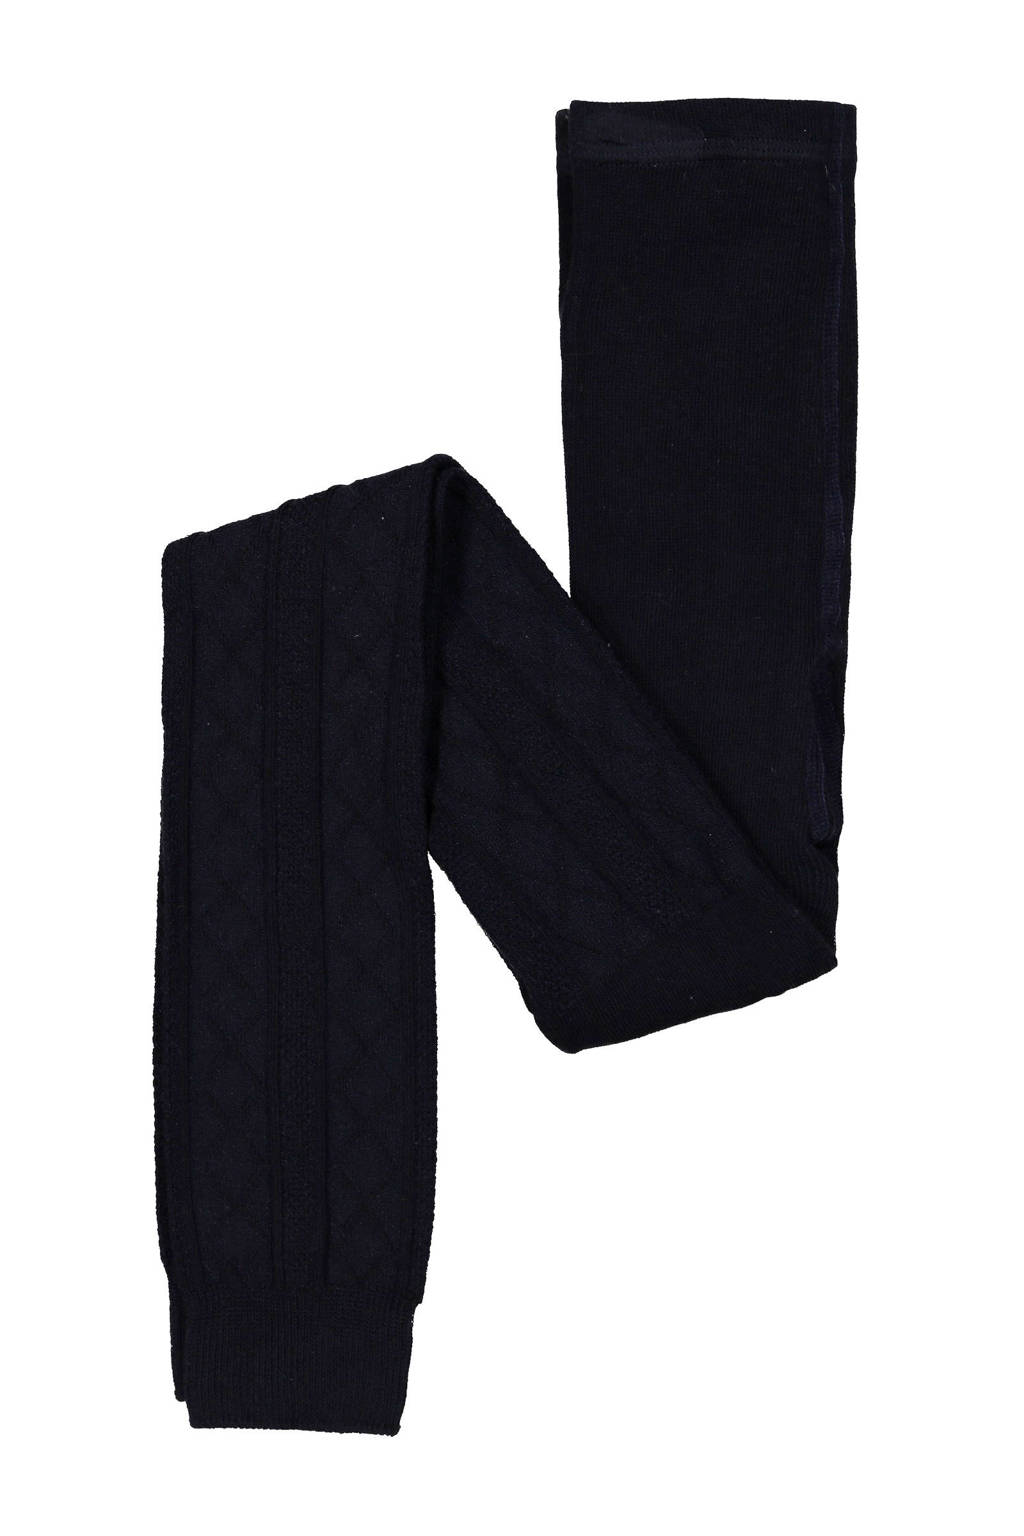 4funkyflavours legging Get Another Love donkerblauw, Donkerblauw